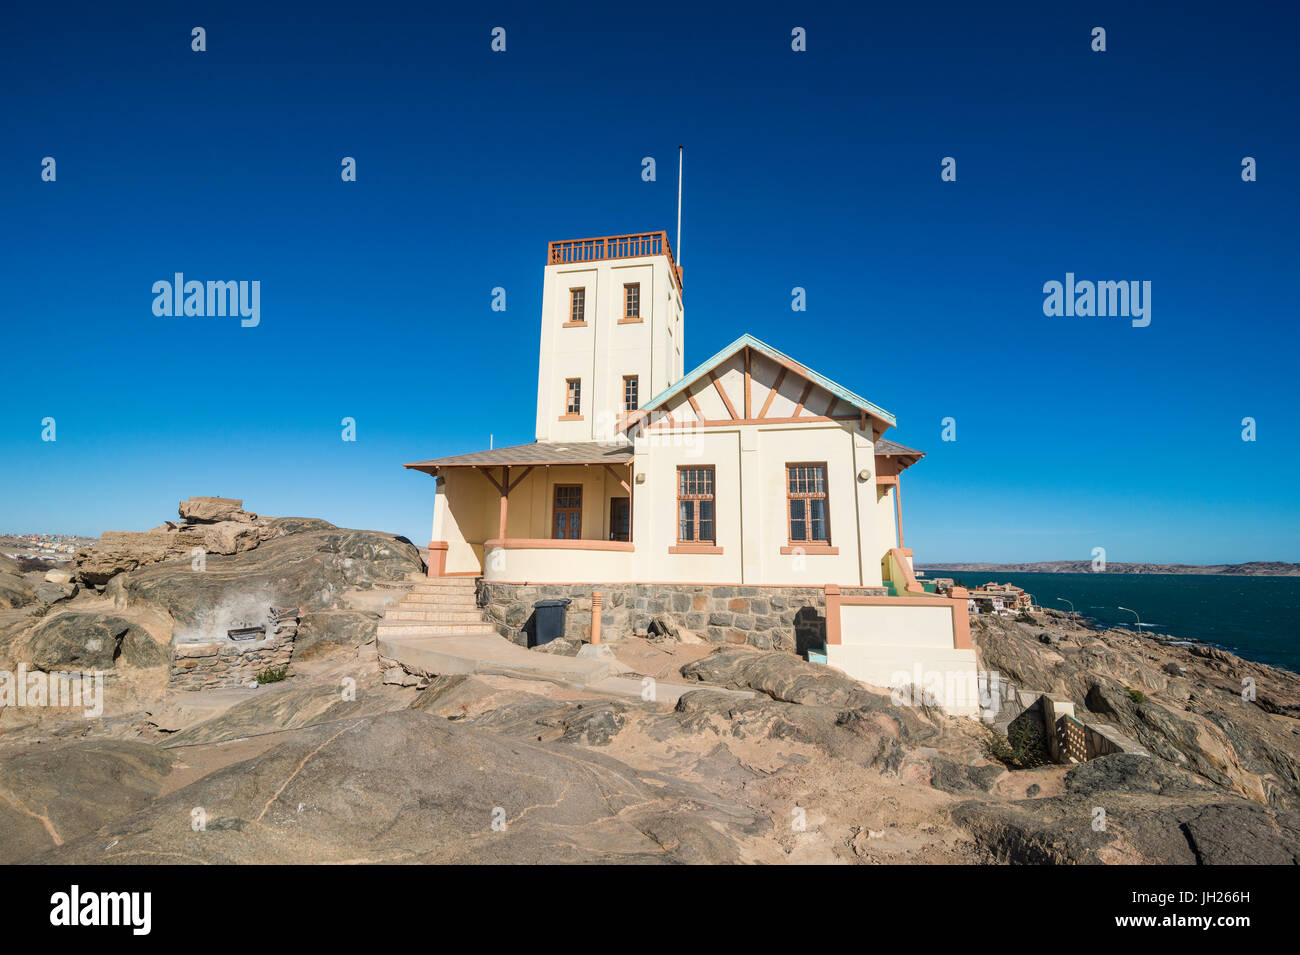 Old Lighthouse in Luderitz, Namibia, Africa - Stock Image